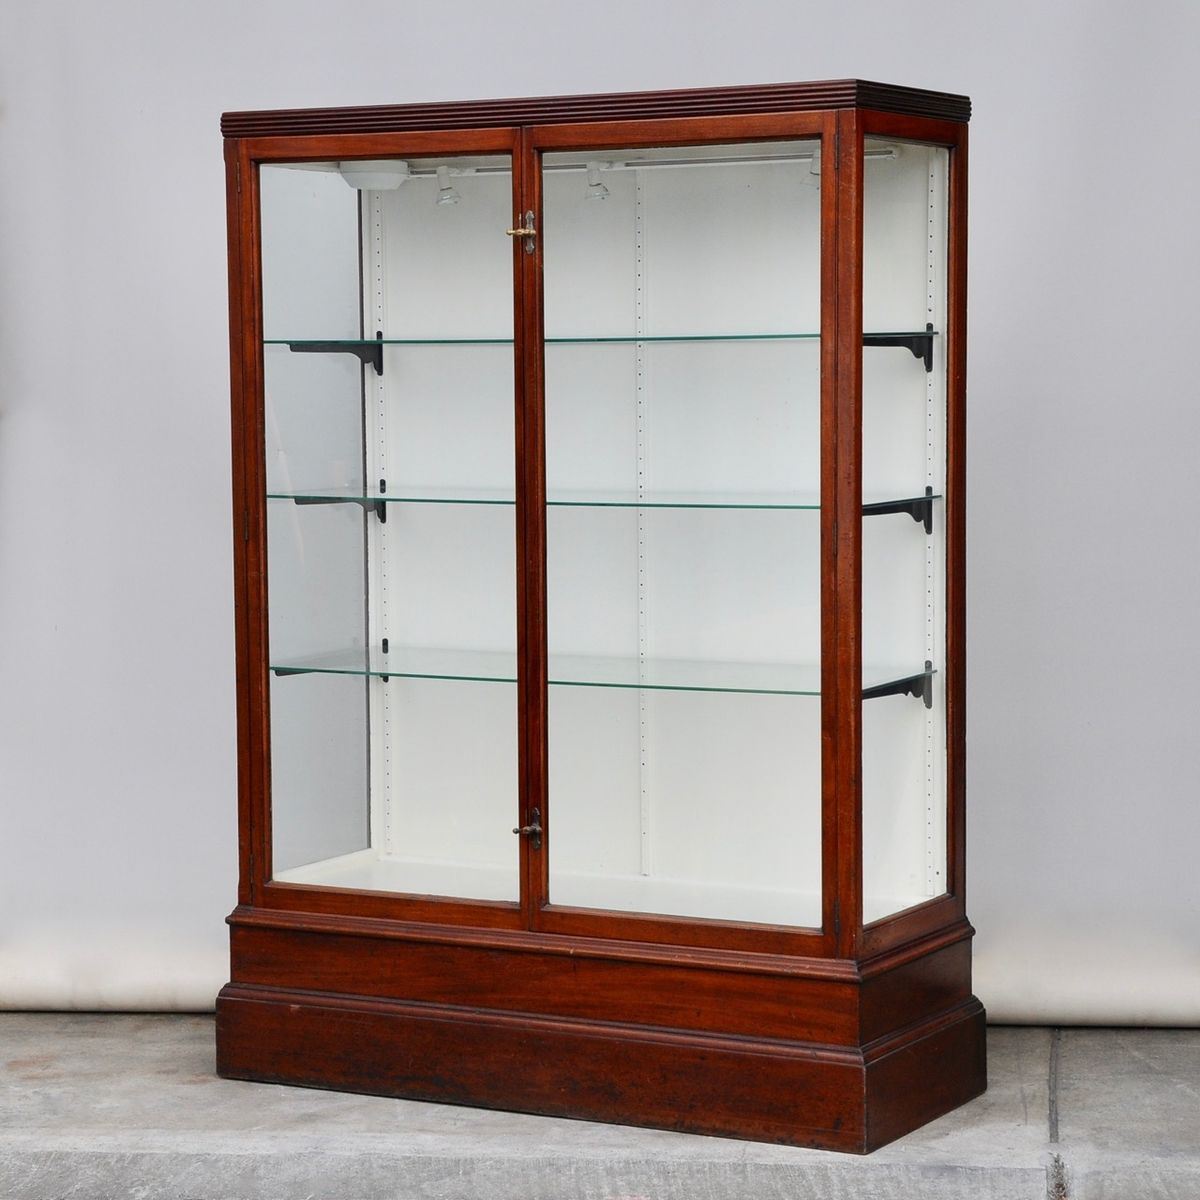 Antique Mahogany Shop Display Cabinet for sale at Pamono